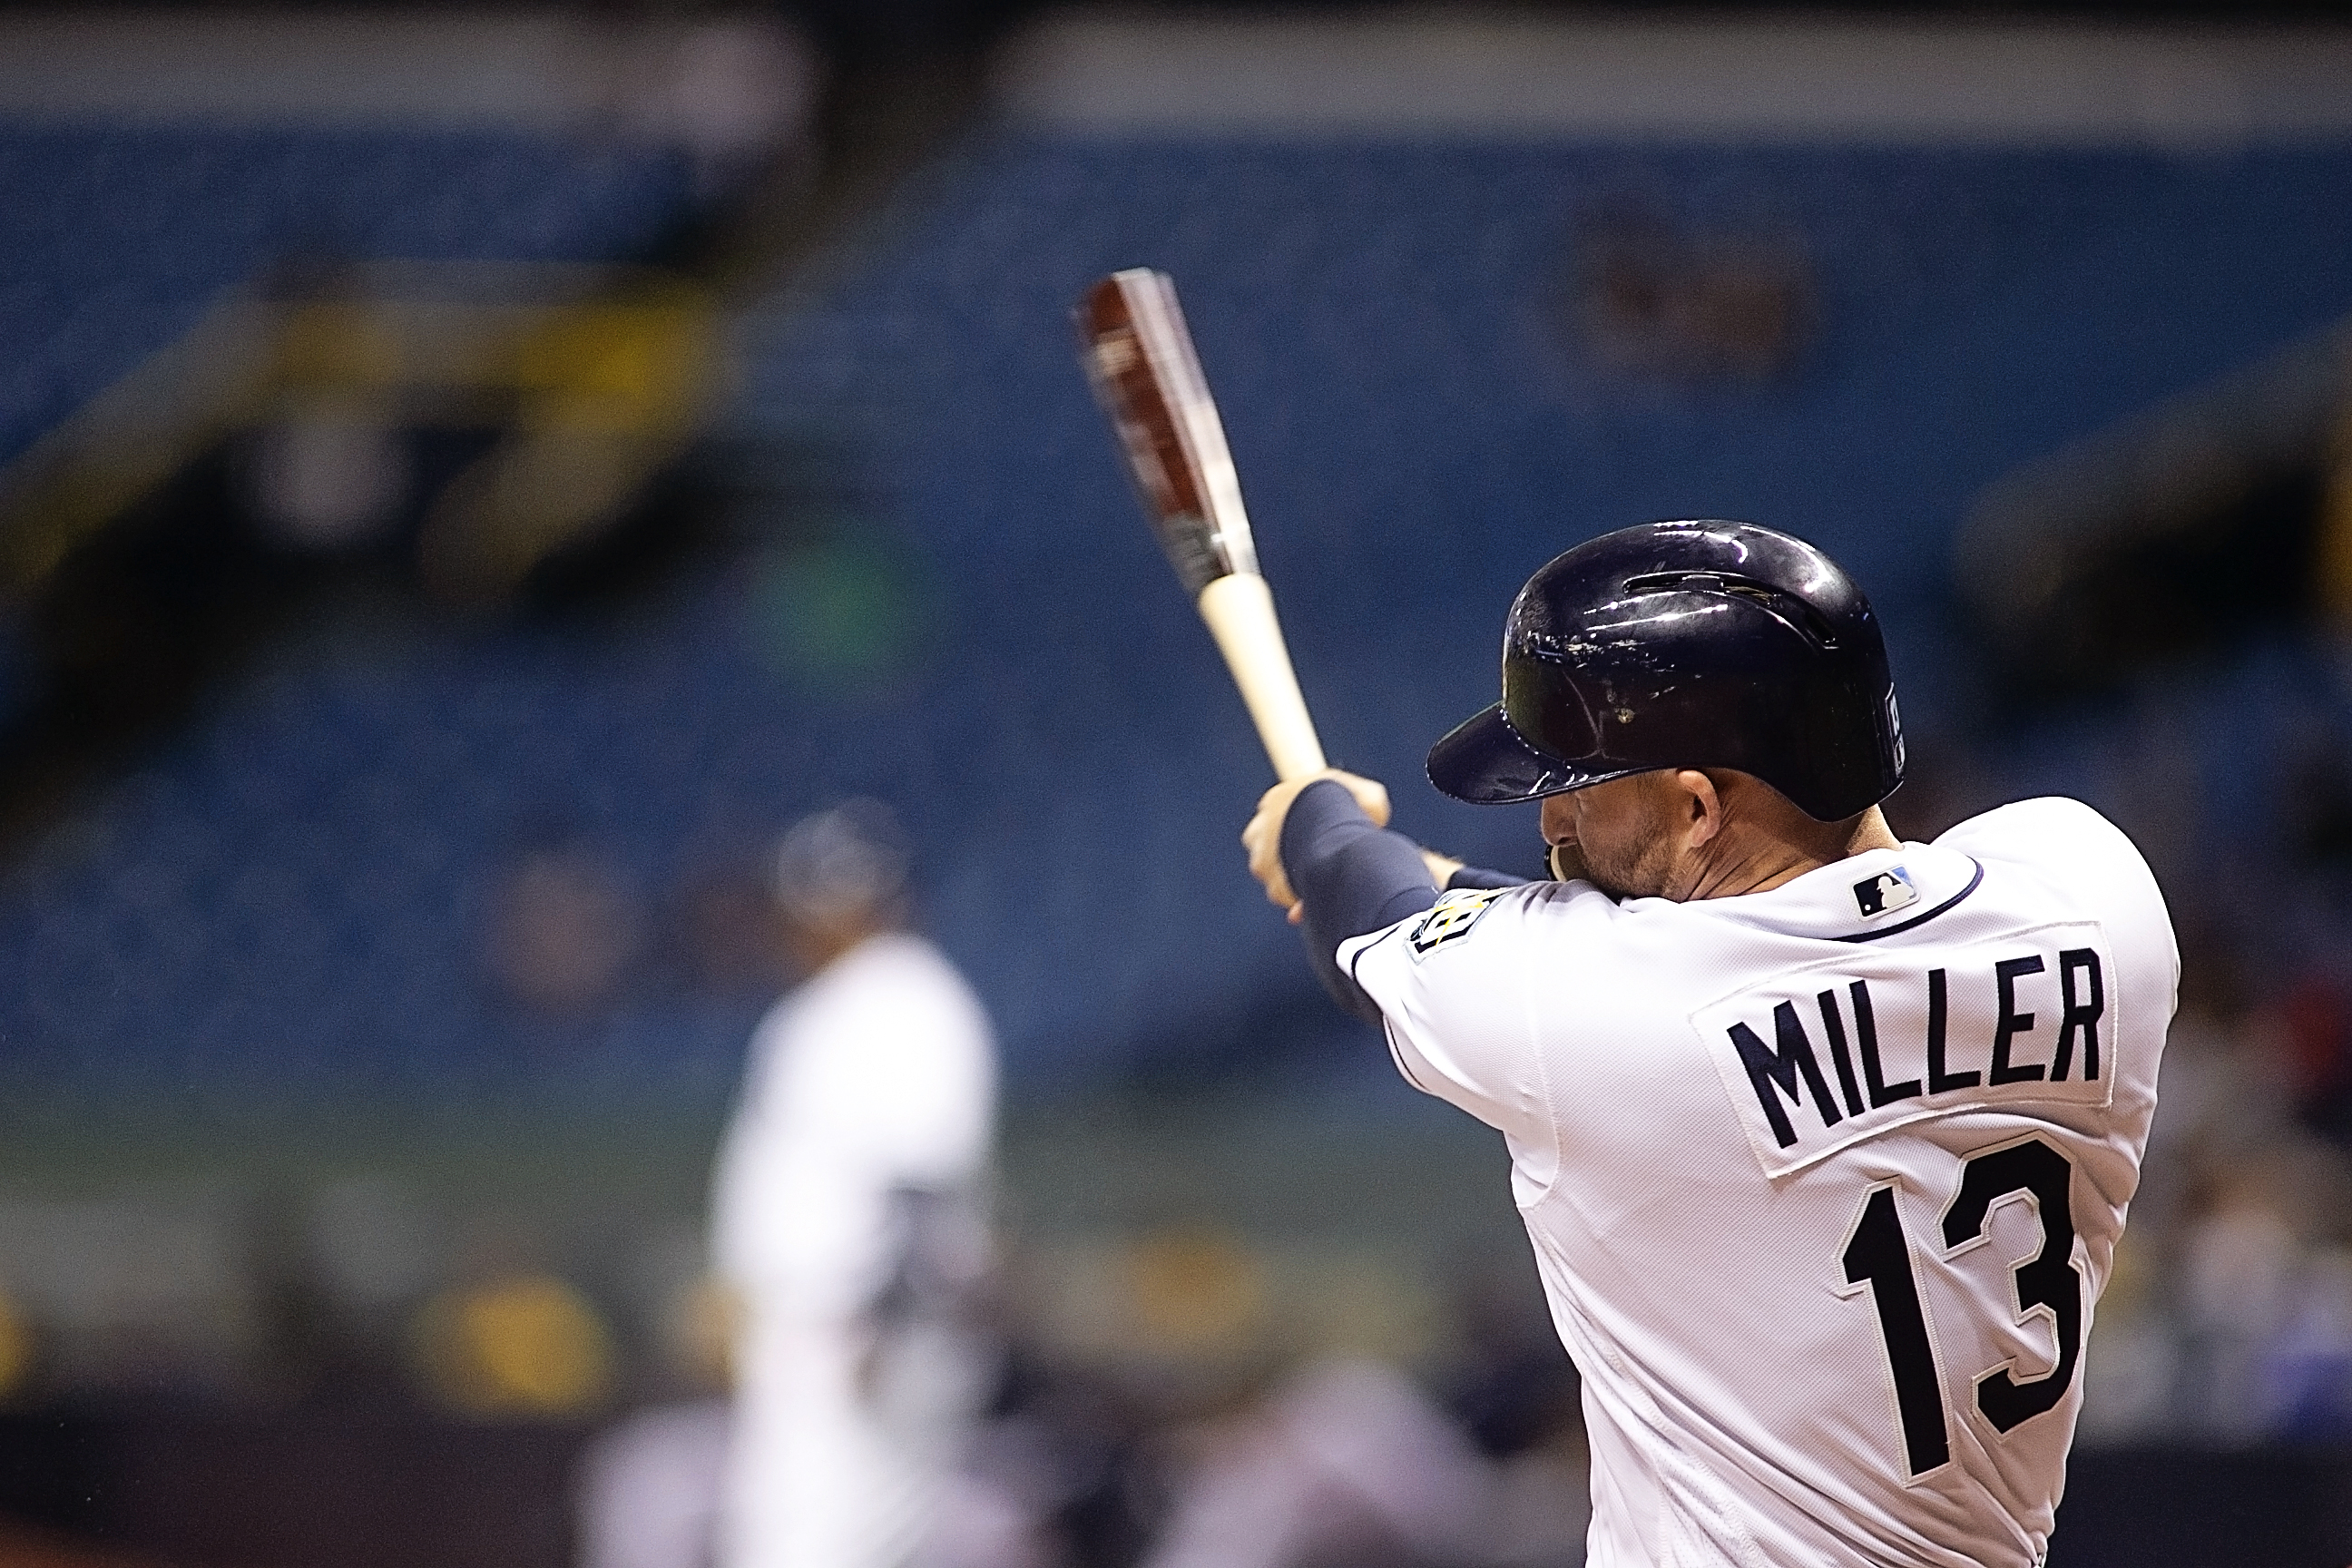 Miller had a pinch-hit double in the ninth inning./CARMEN MANDATO